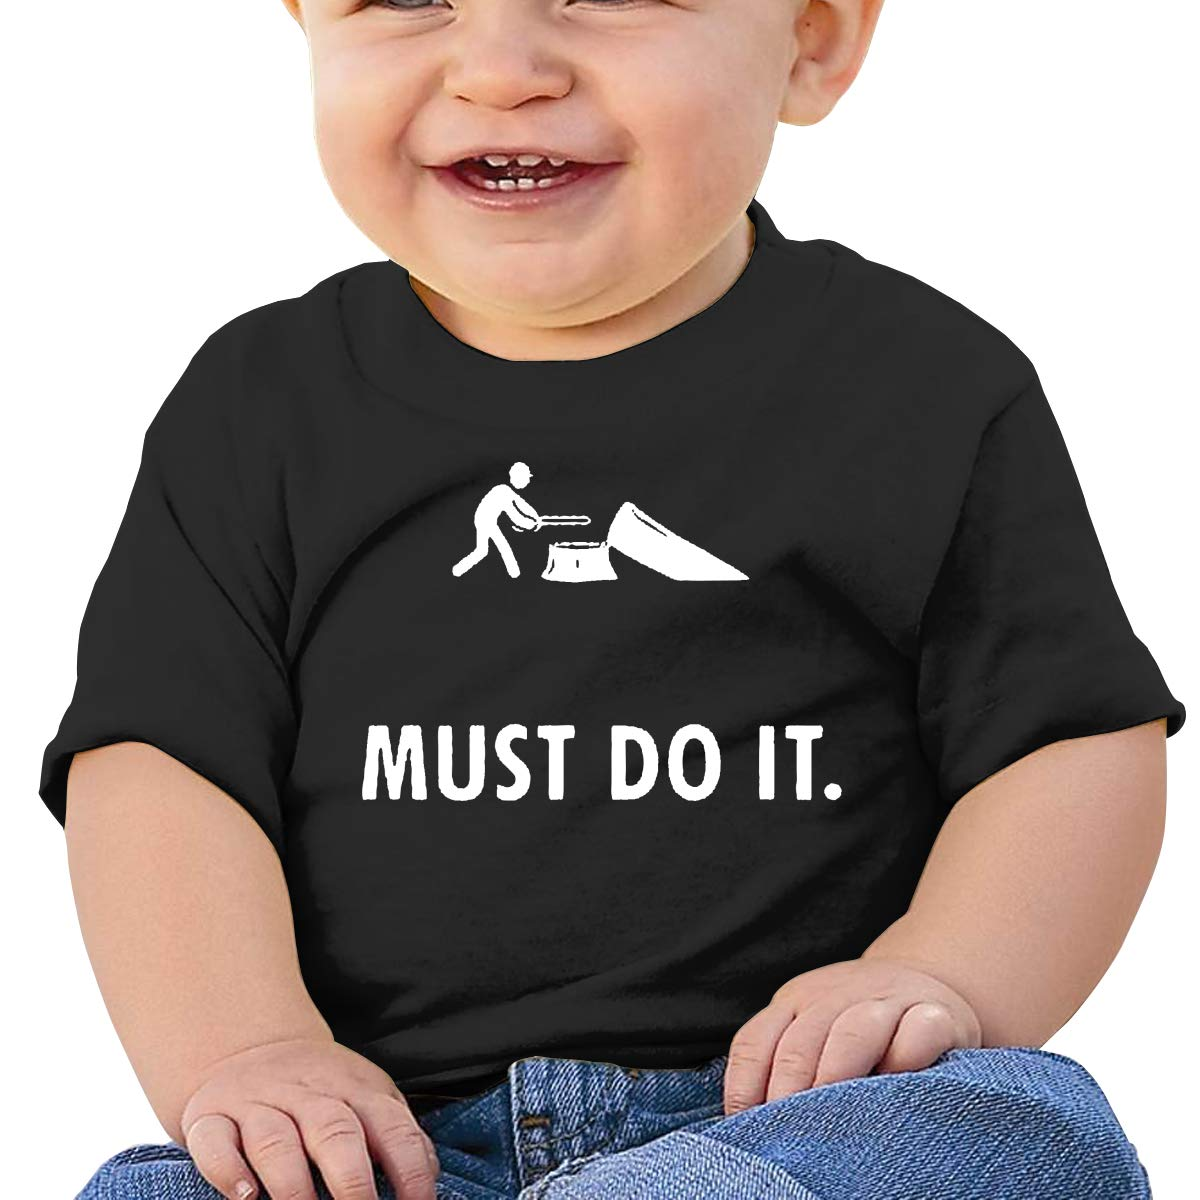 Must Do It Toddler Short-Sleeve Tee for Boy Girl Infant Kids T-Shirt On Newborn 6-18 Months